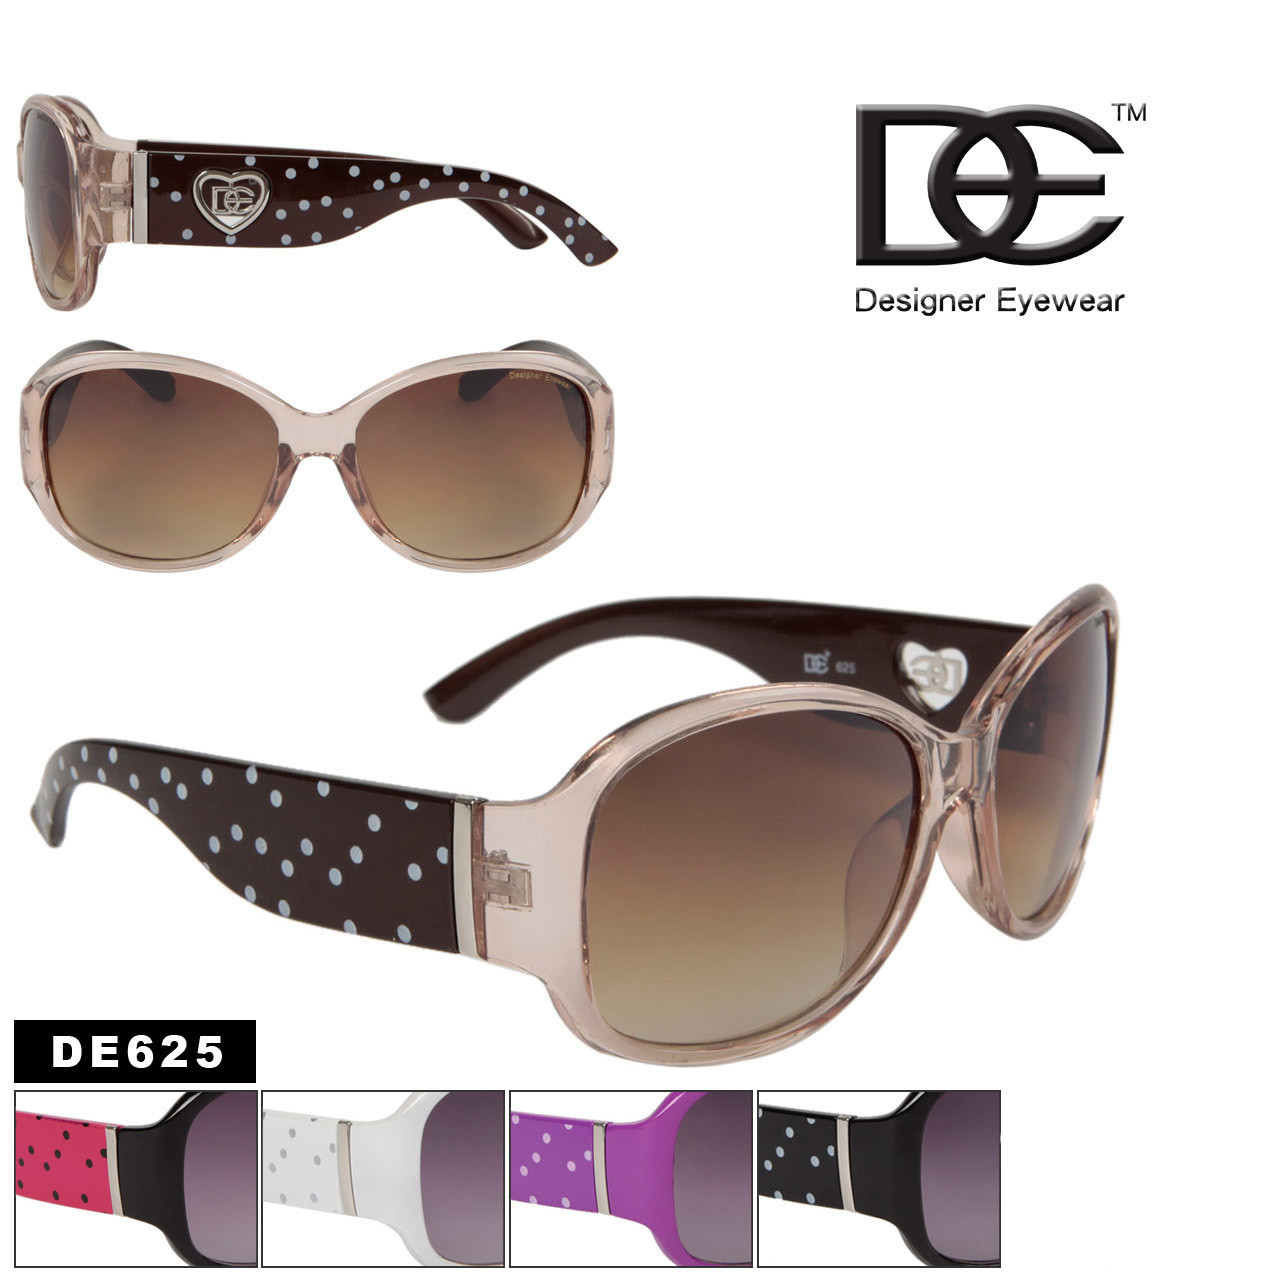 DE Designer Eyewear Fashion Sunglasses DE625 (12 pcs.) (Assorted Colors)